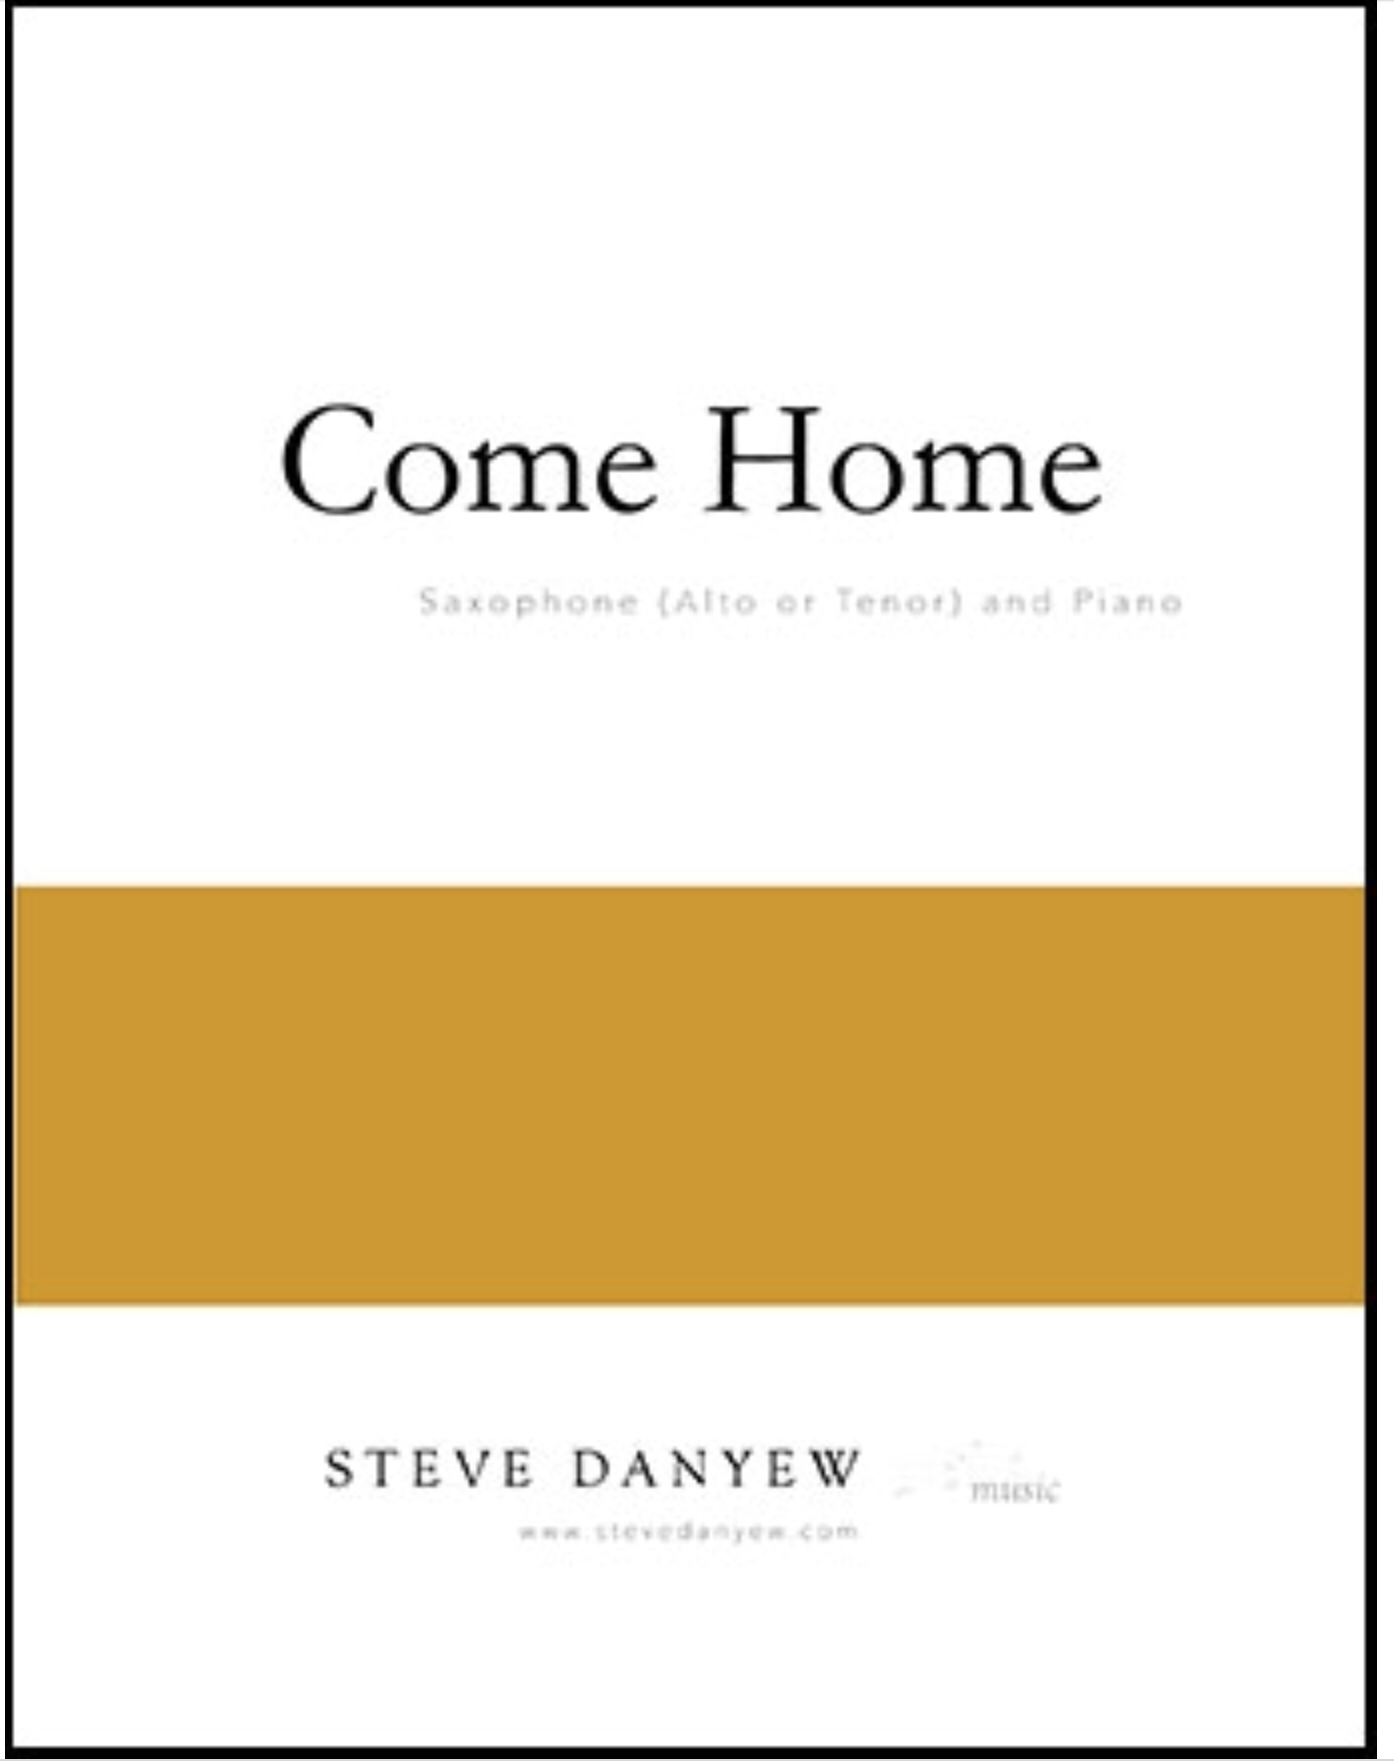 Come Home  by Steve Danyew